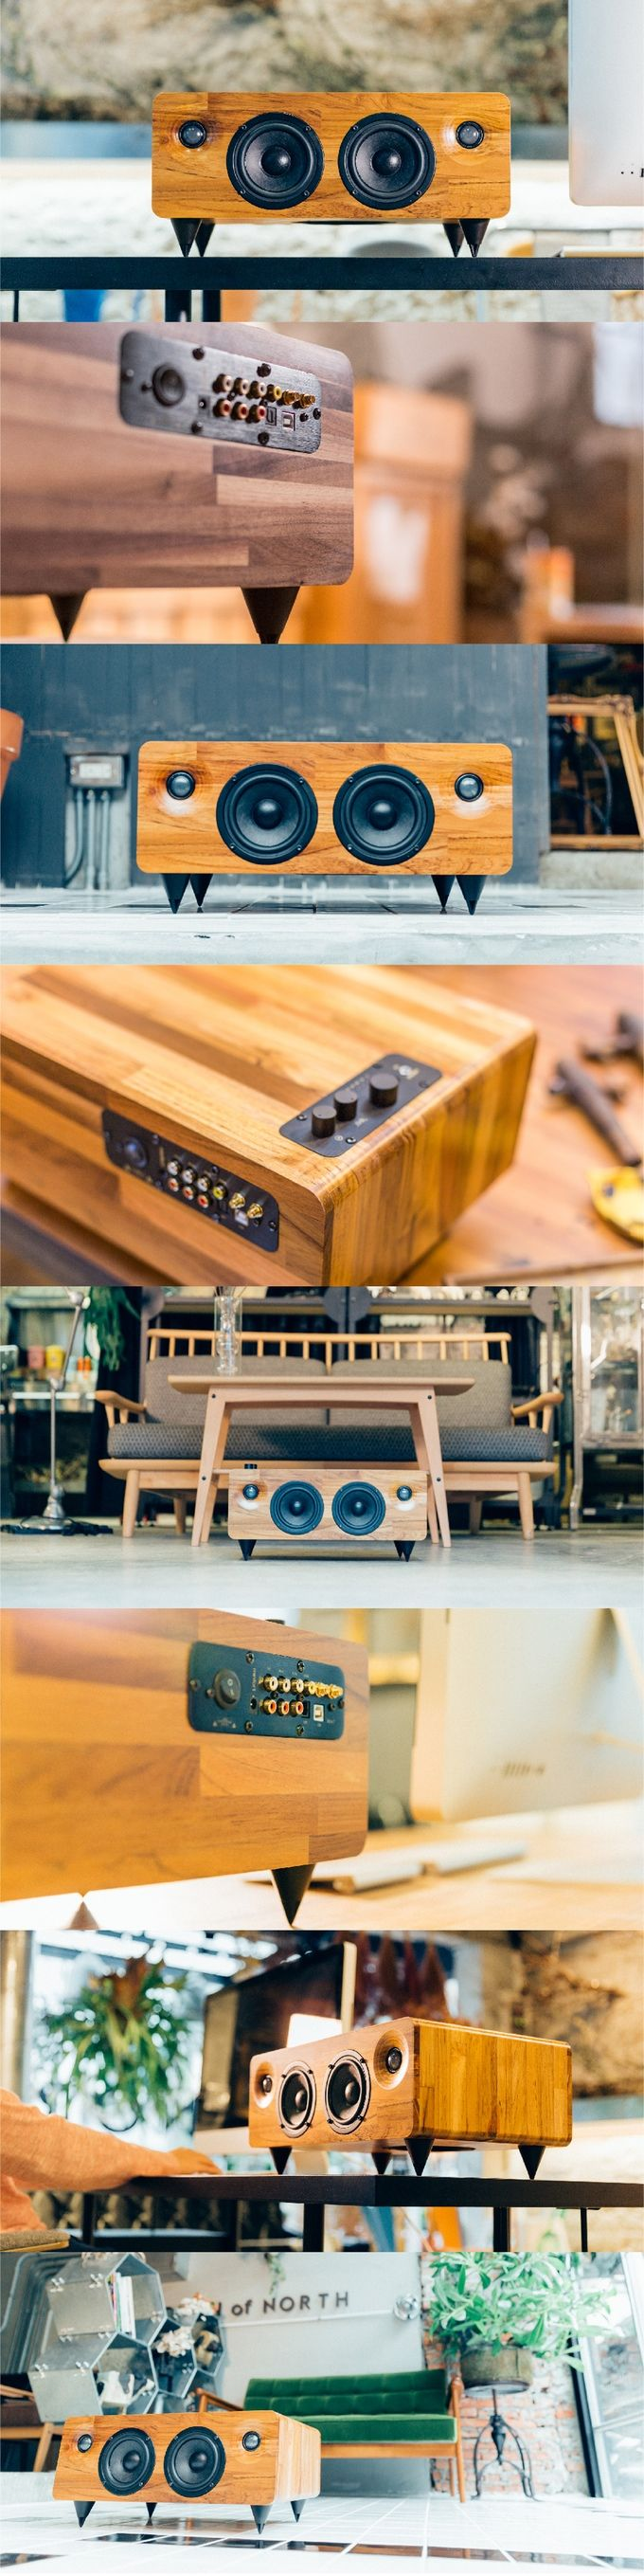 Bringing audio engineering, craftsmanship, and technology together.